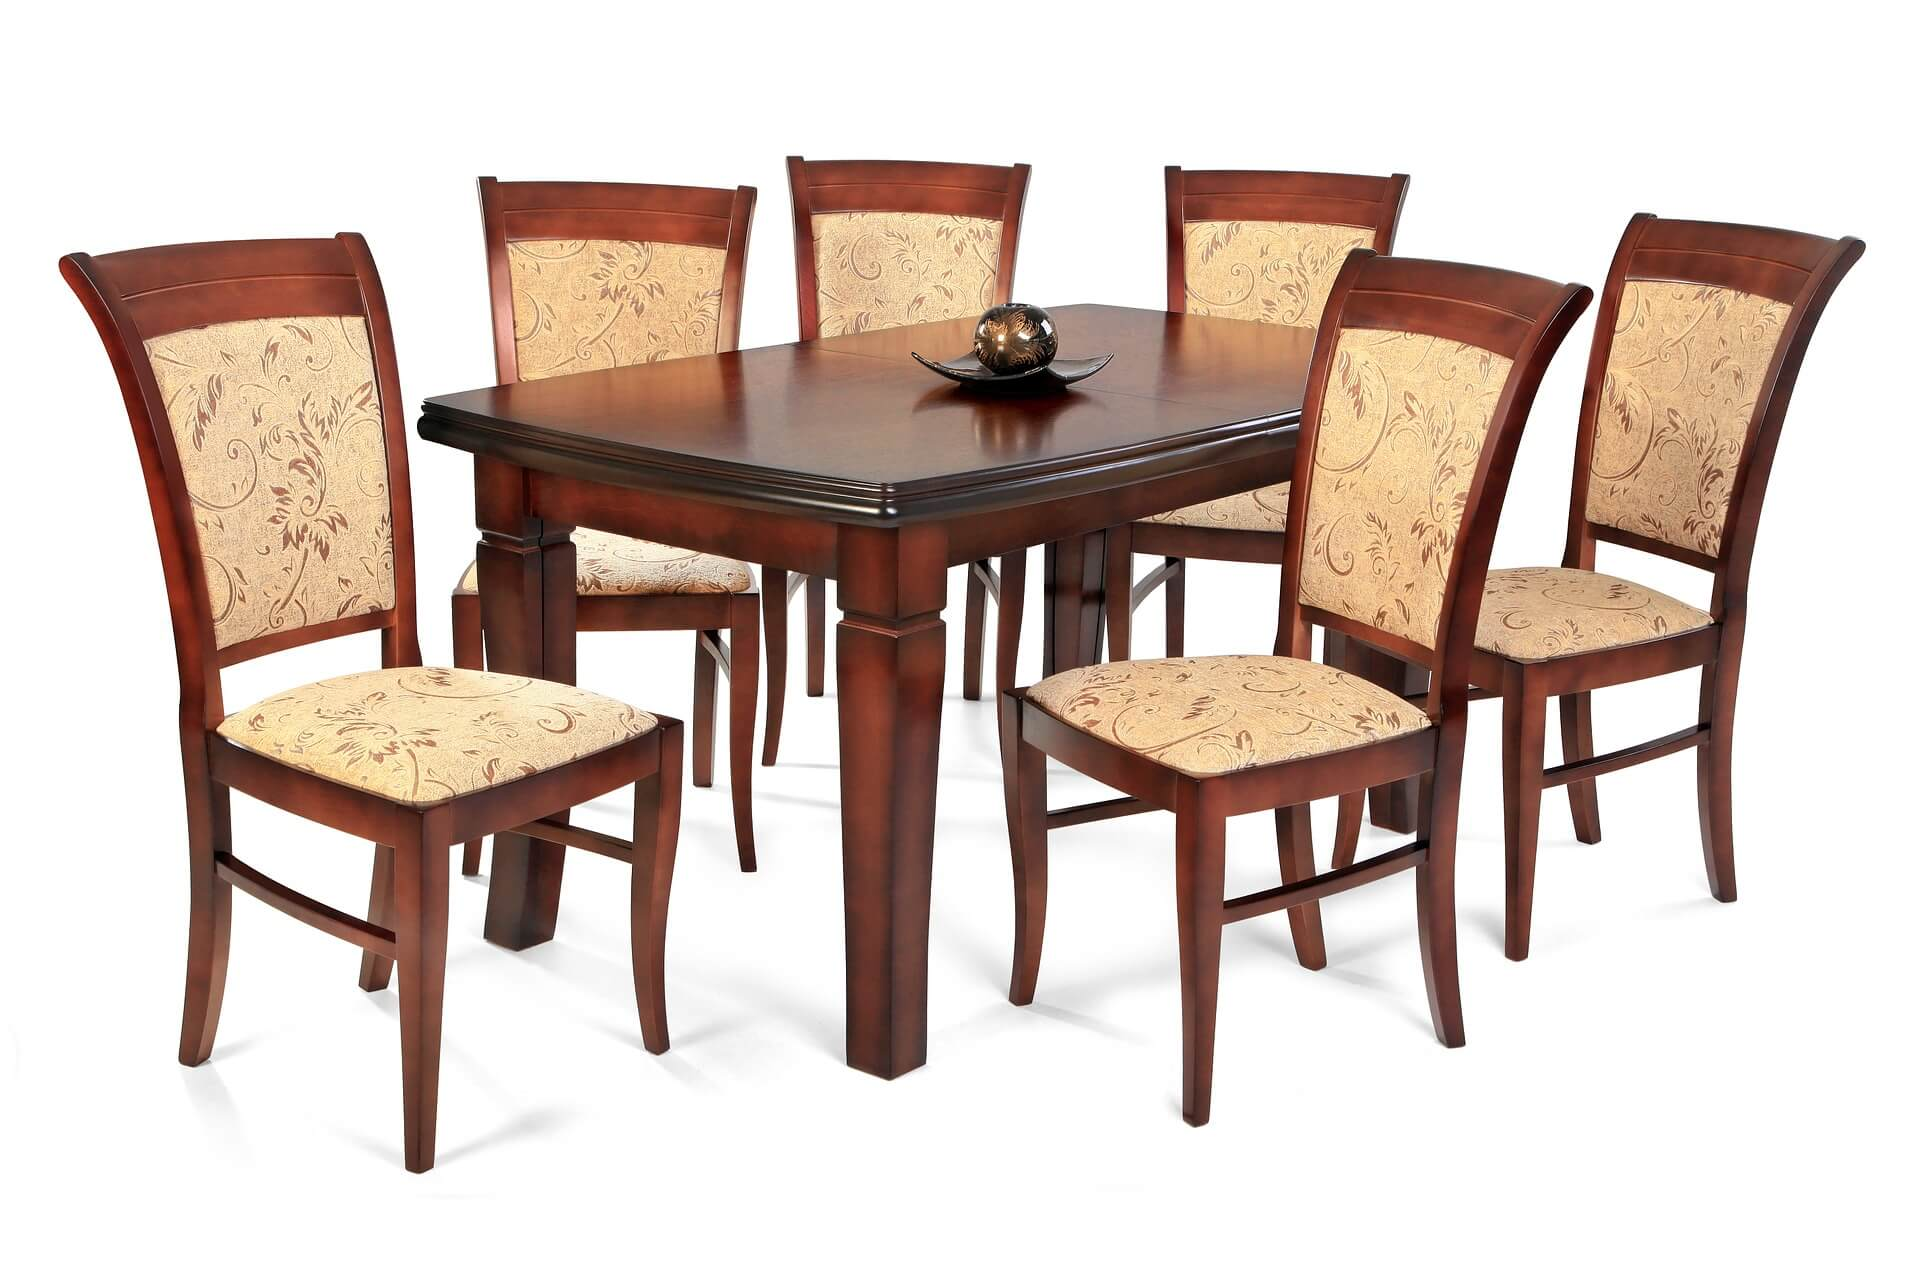 The Best Dining Room Chairs under 100$ - Reviews [2020]